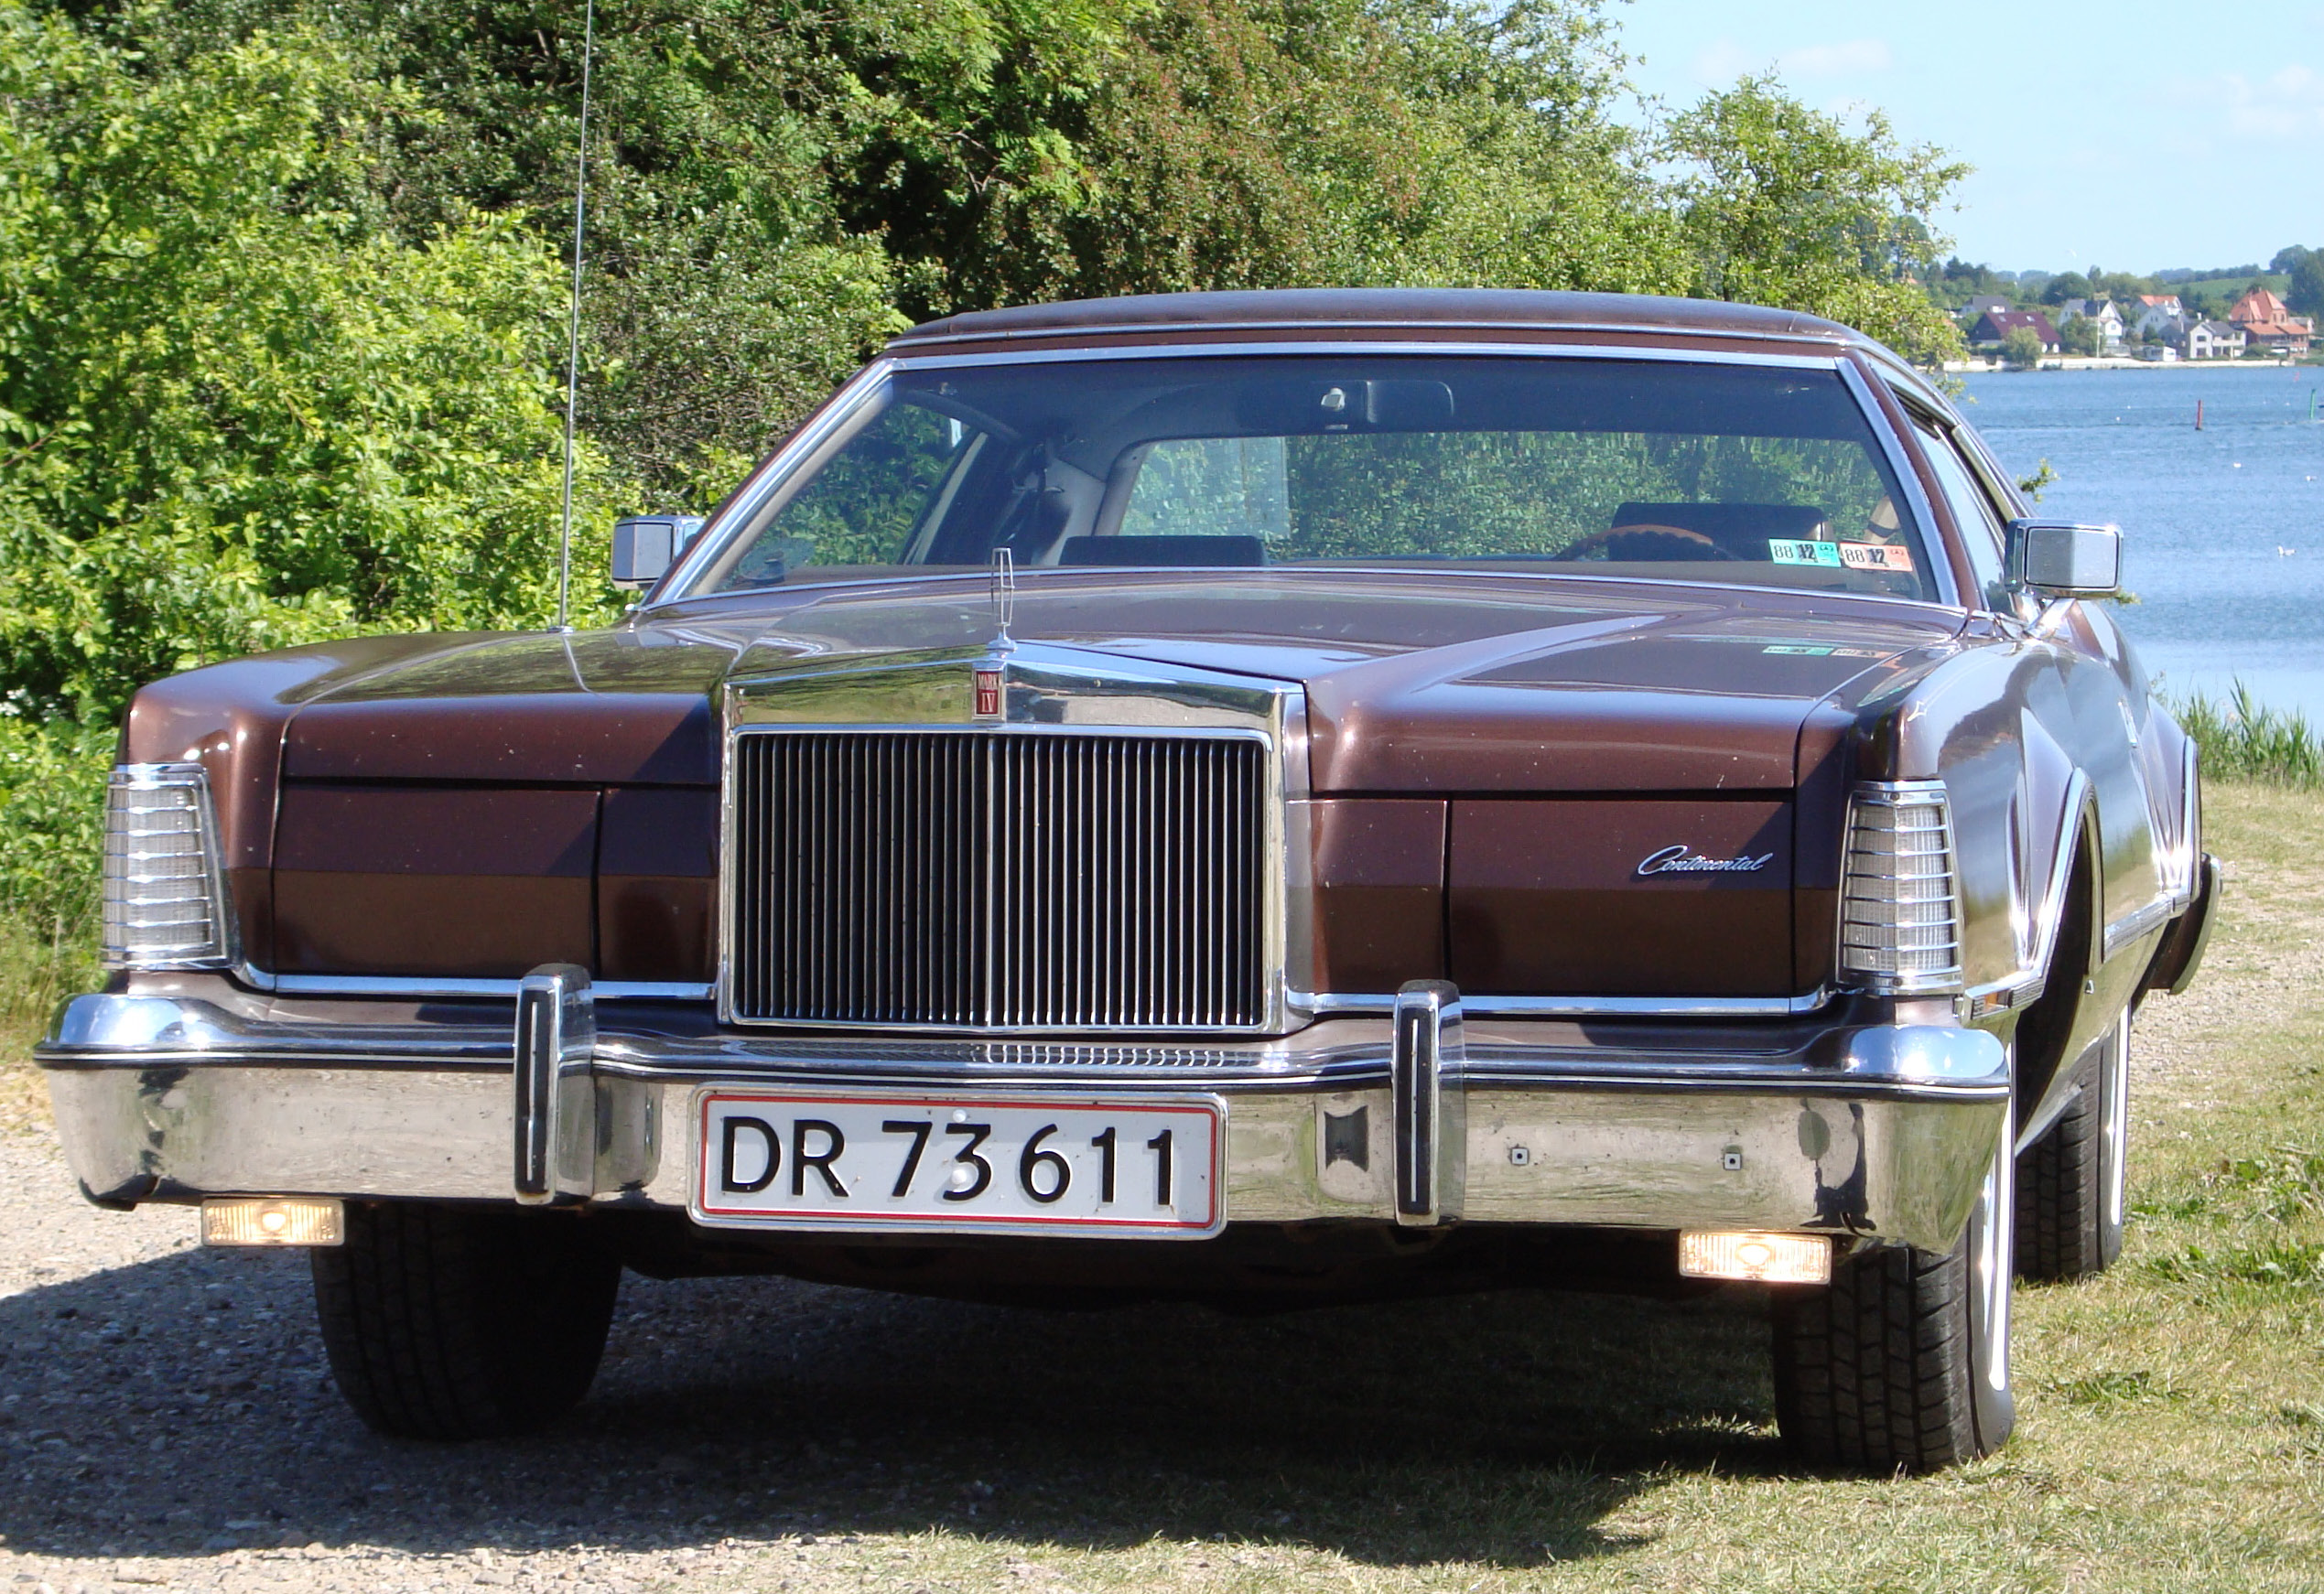 449258 Fascinating Lincoln Continental Used In Hit and Run Cars Trend